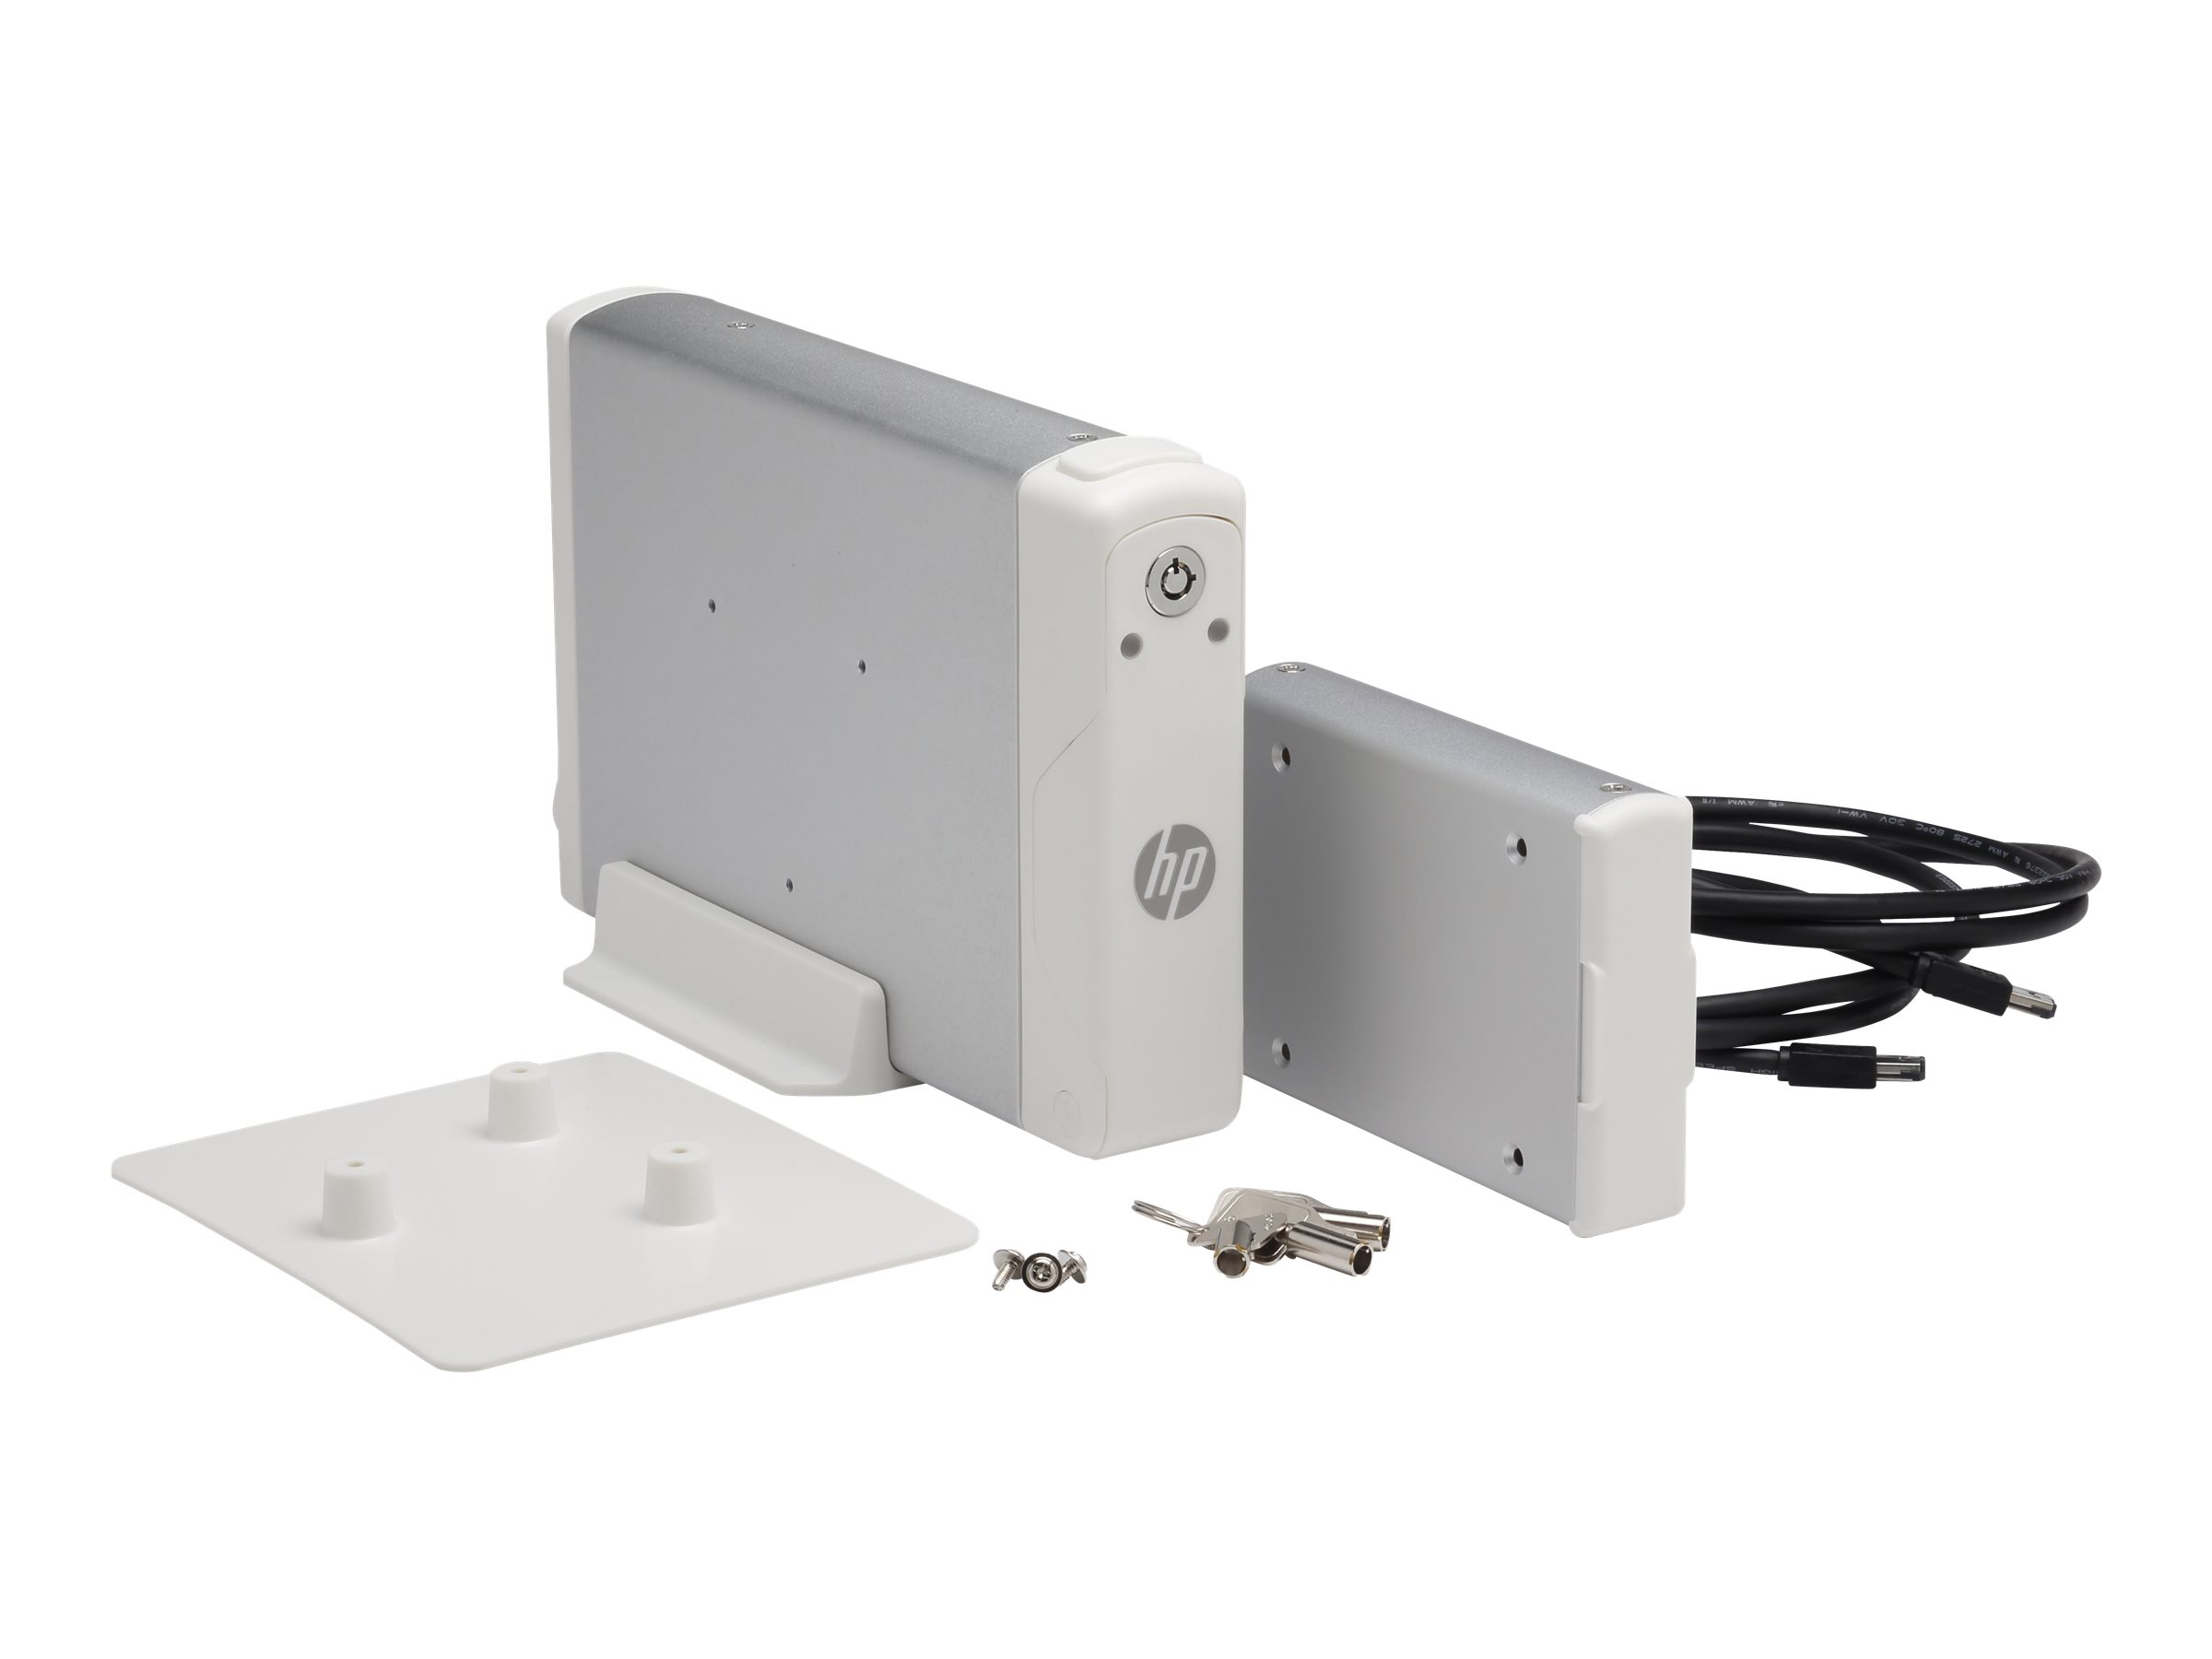 HP Removable Hard Drive Enclosure - storage drive carrier (caddy)